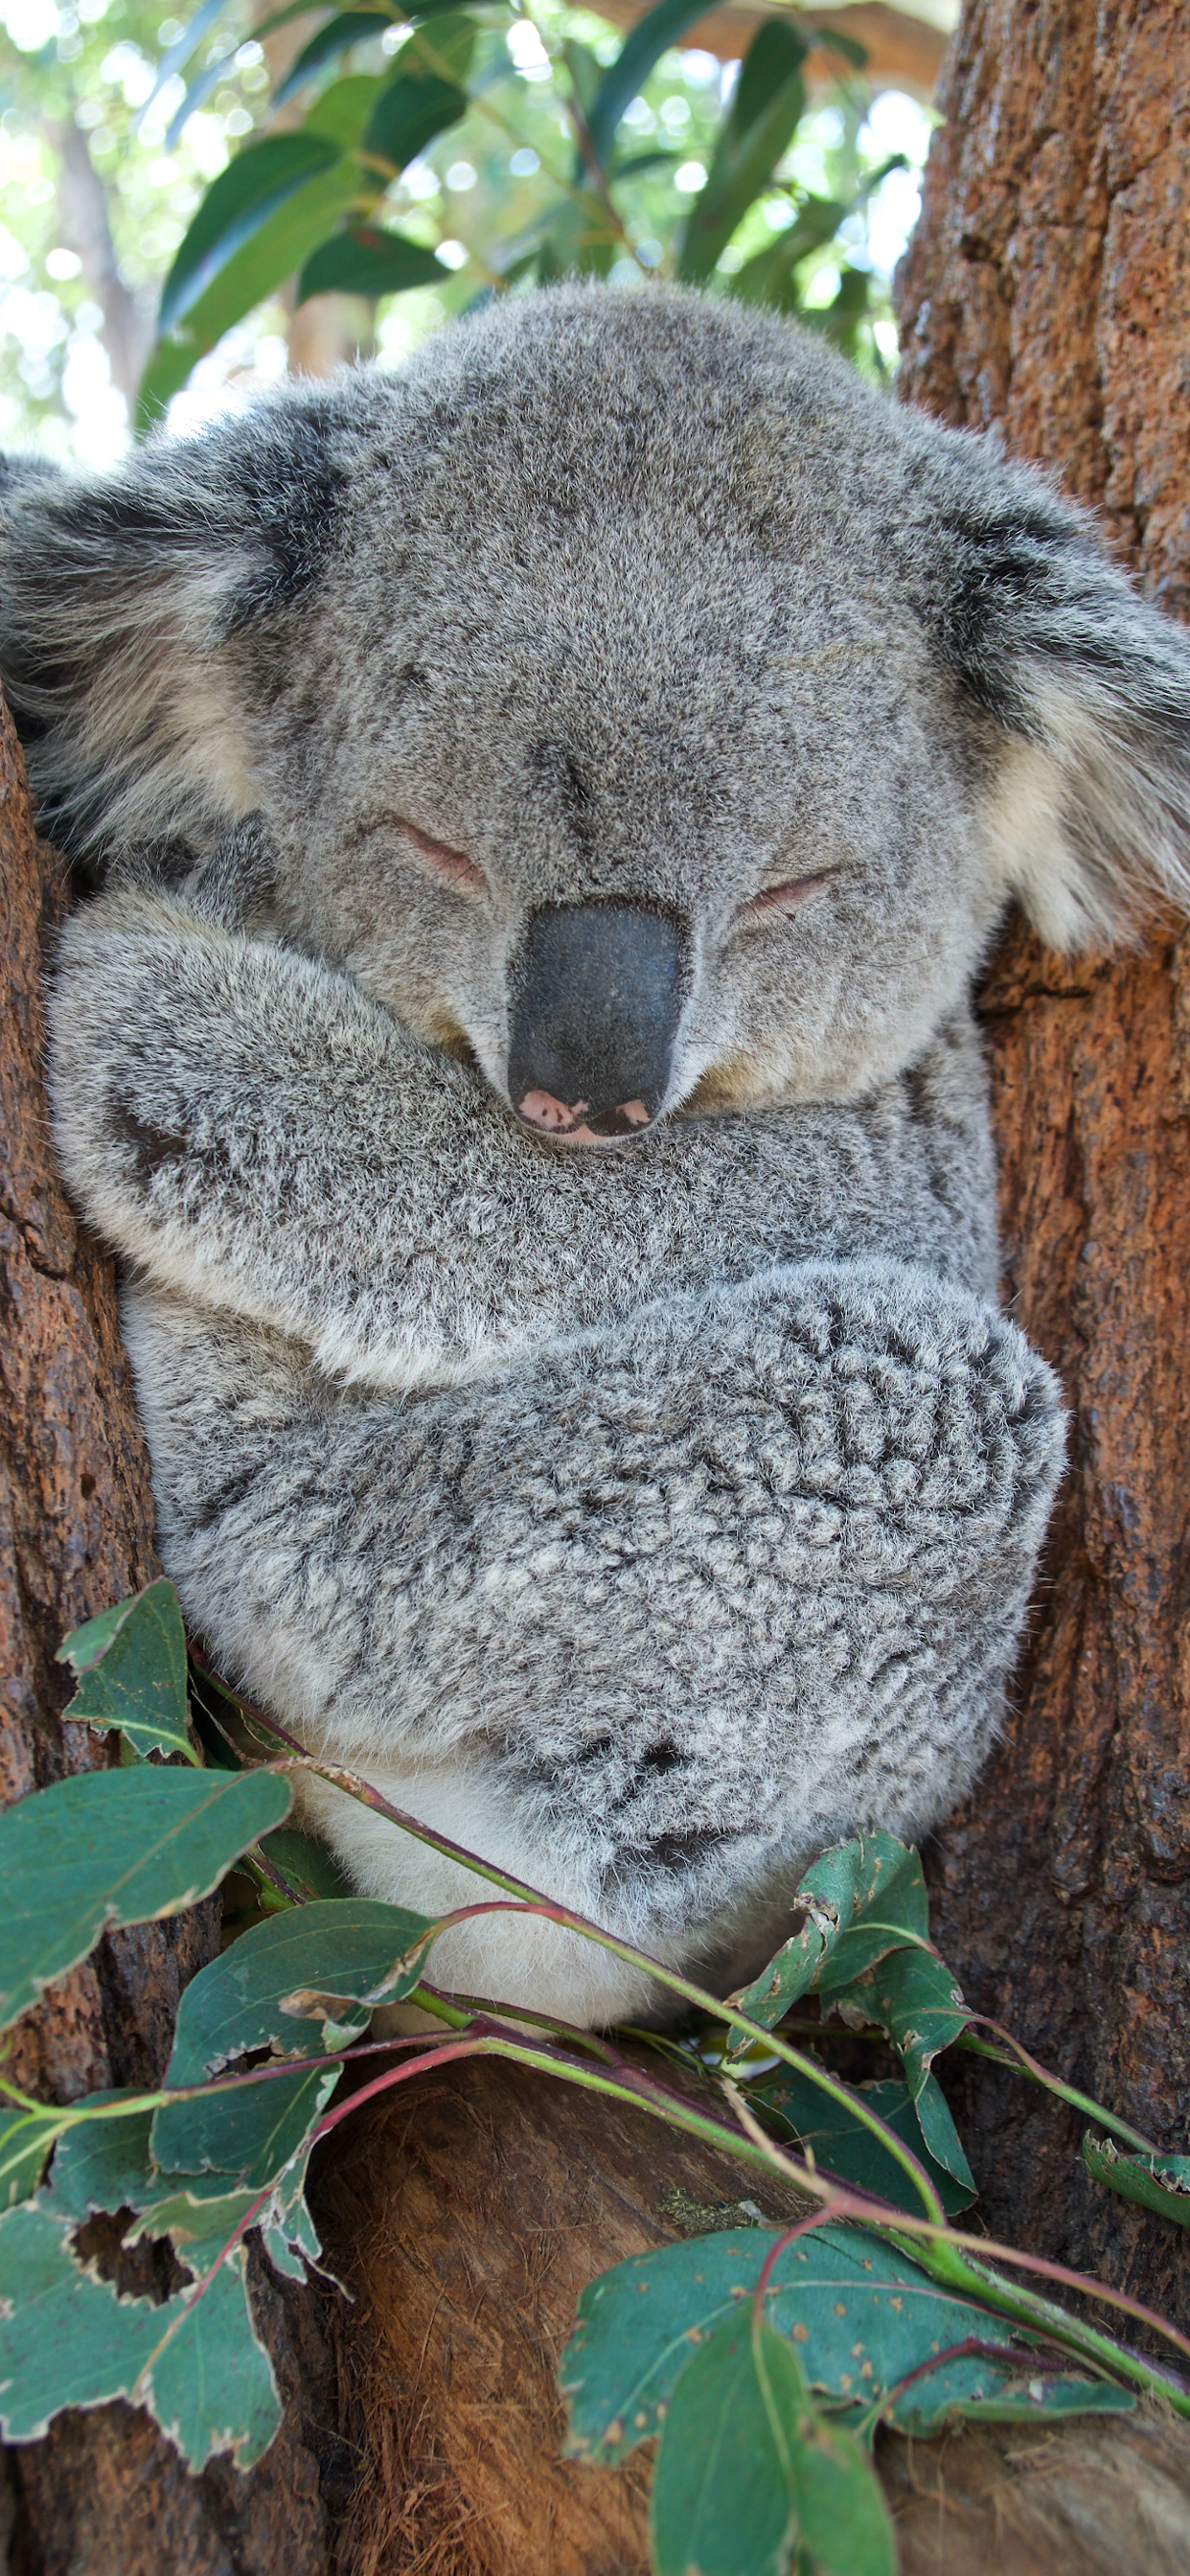 iPhone wallpapers koala sydney australia Koala